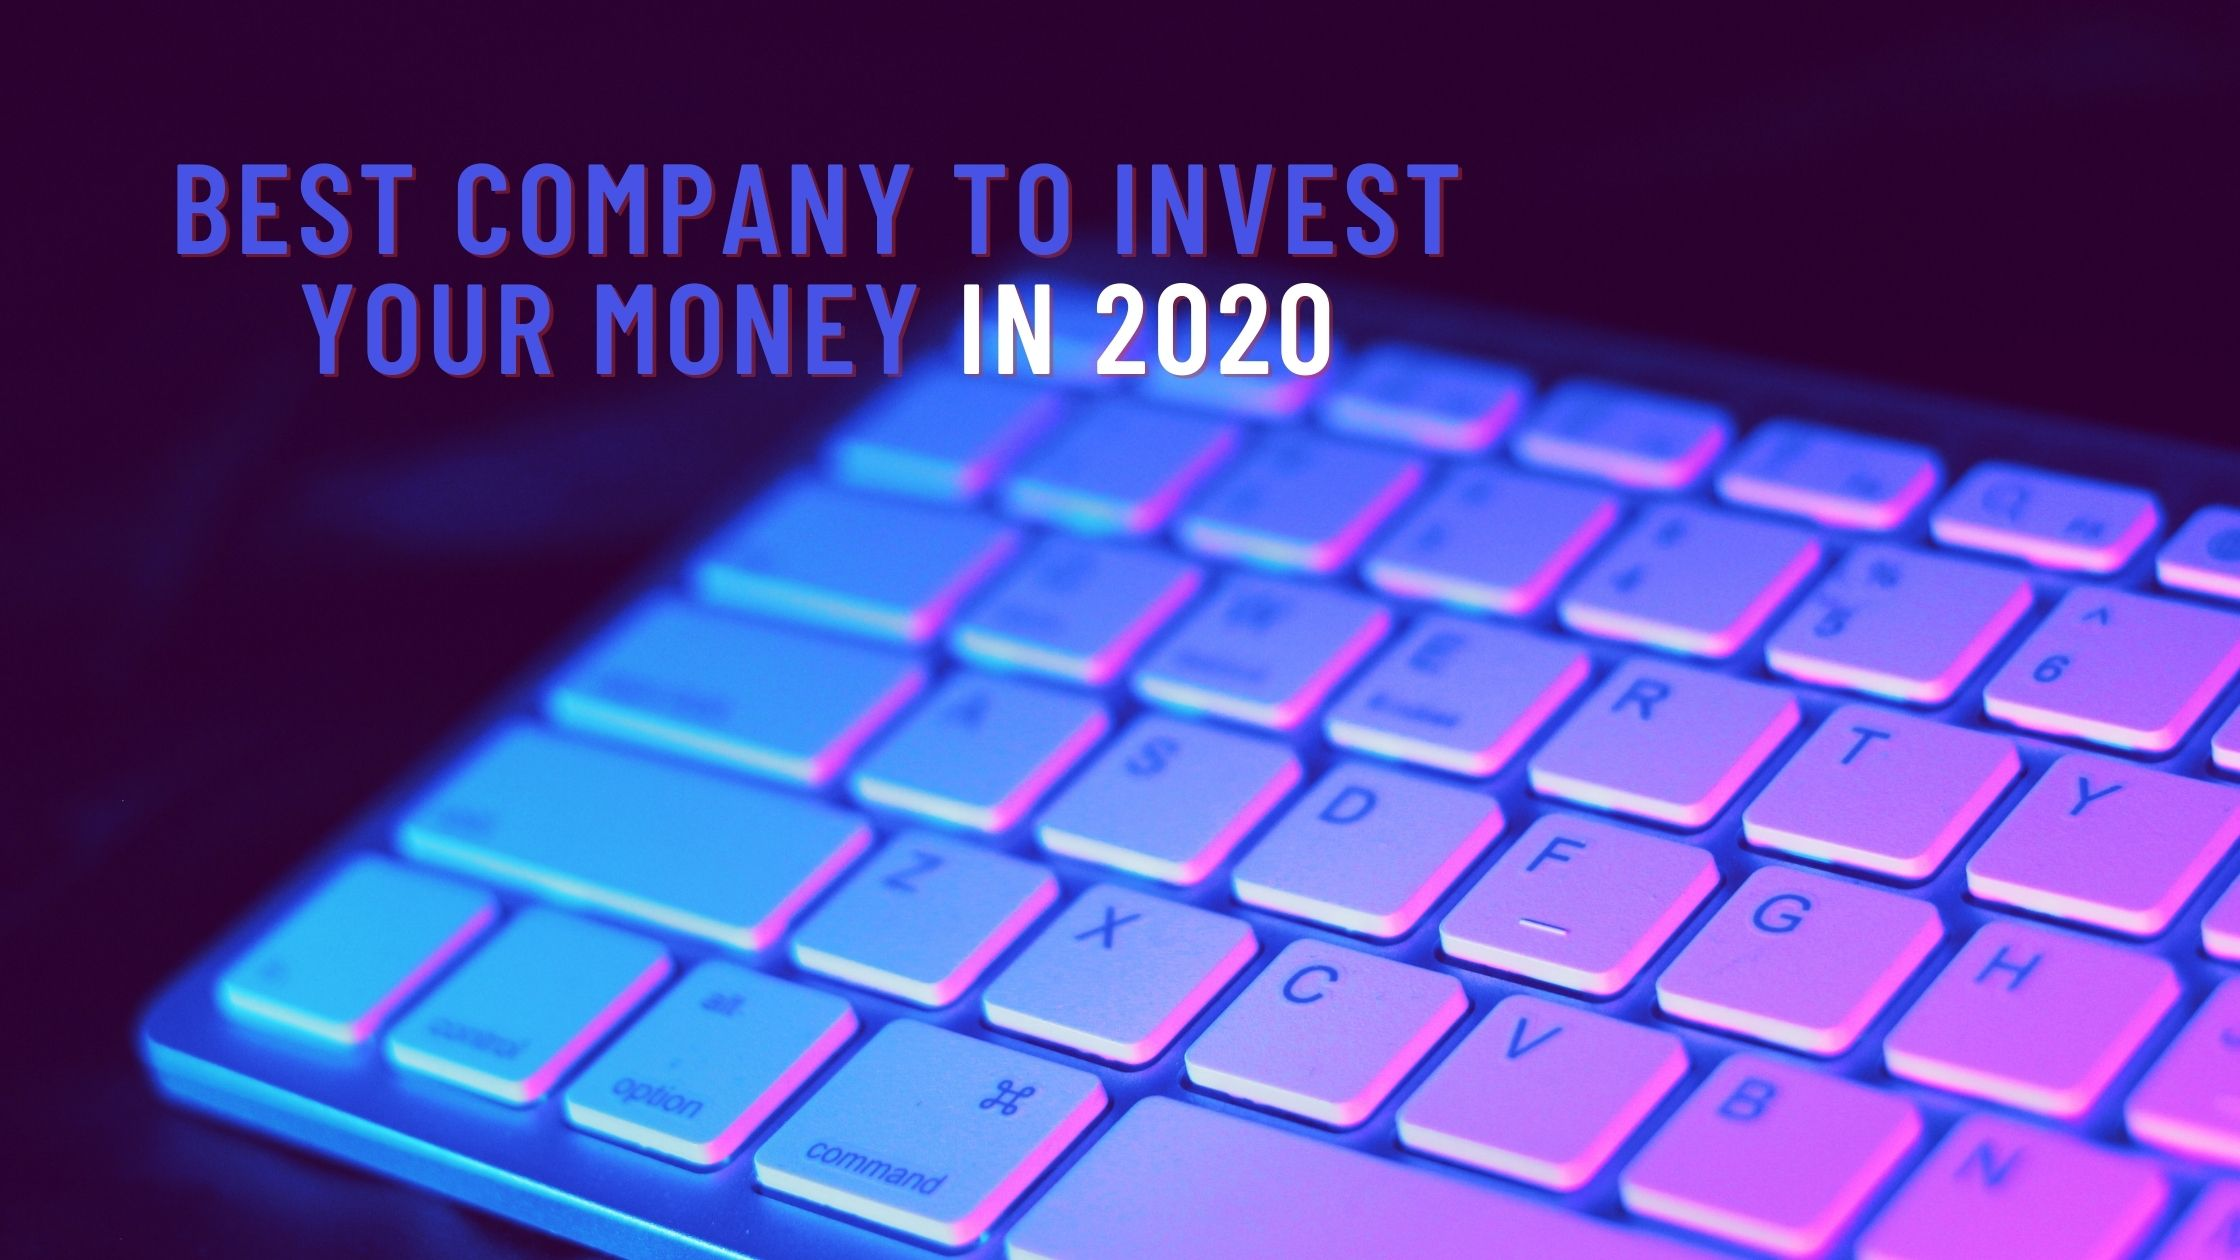 Best Company to Invest Your Money in 2020